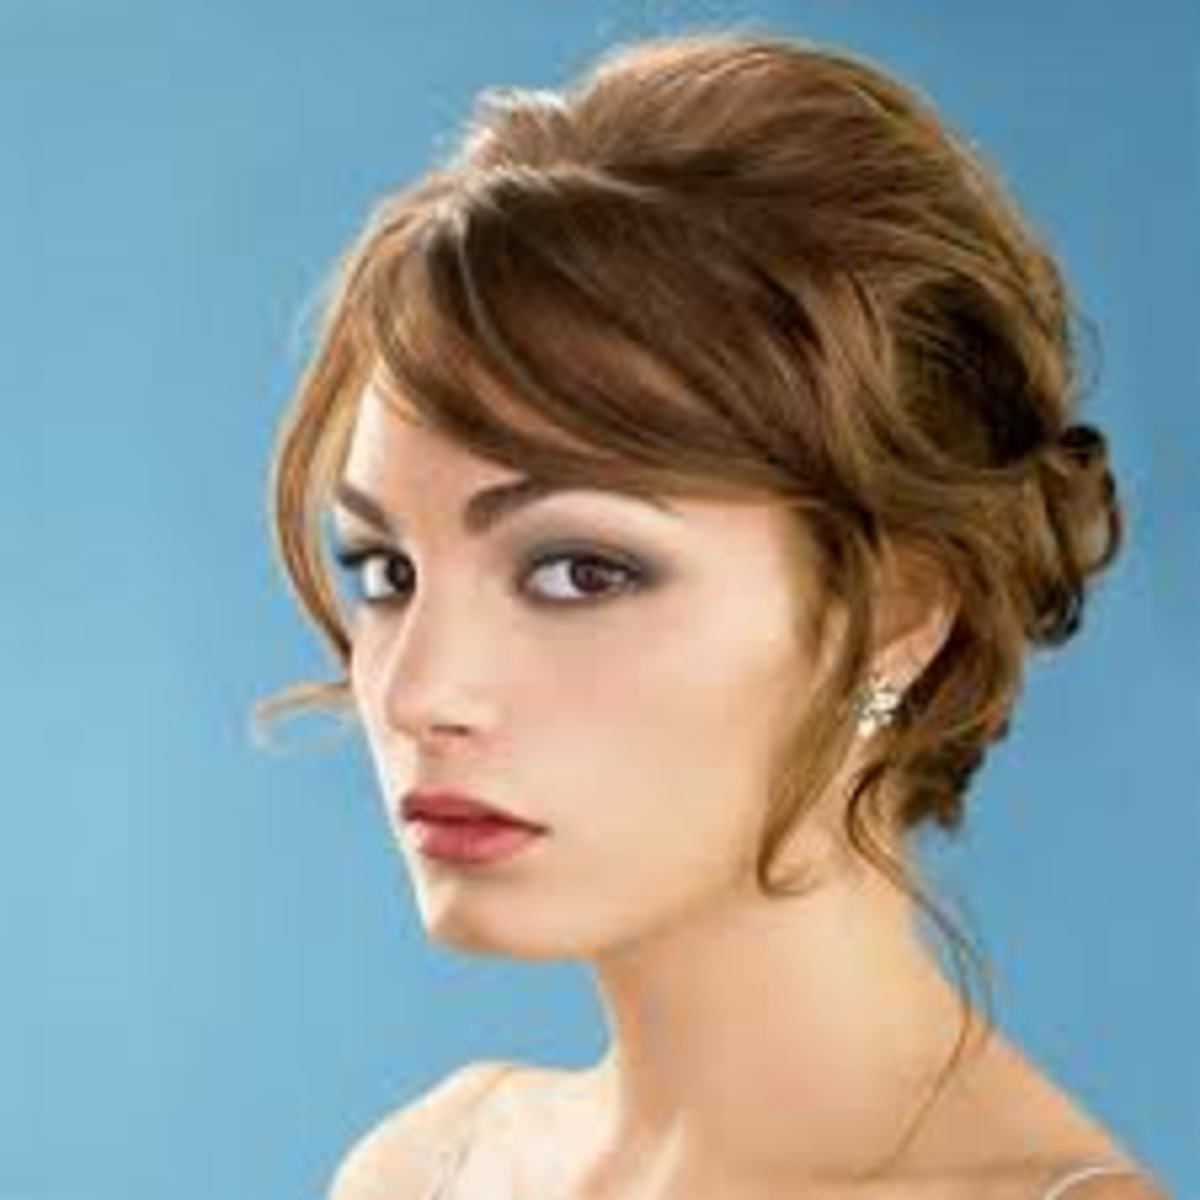 Lots of volume helps hide where shorter strands of hair have been pinned back.